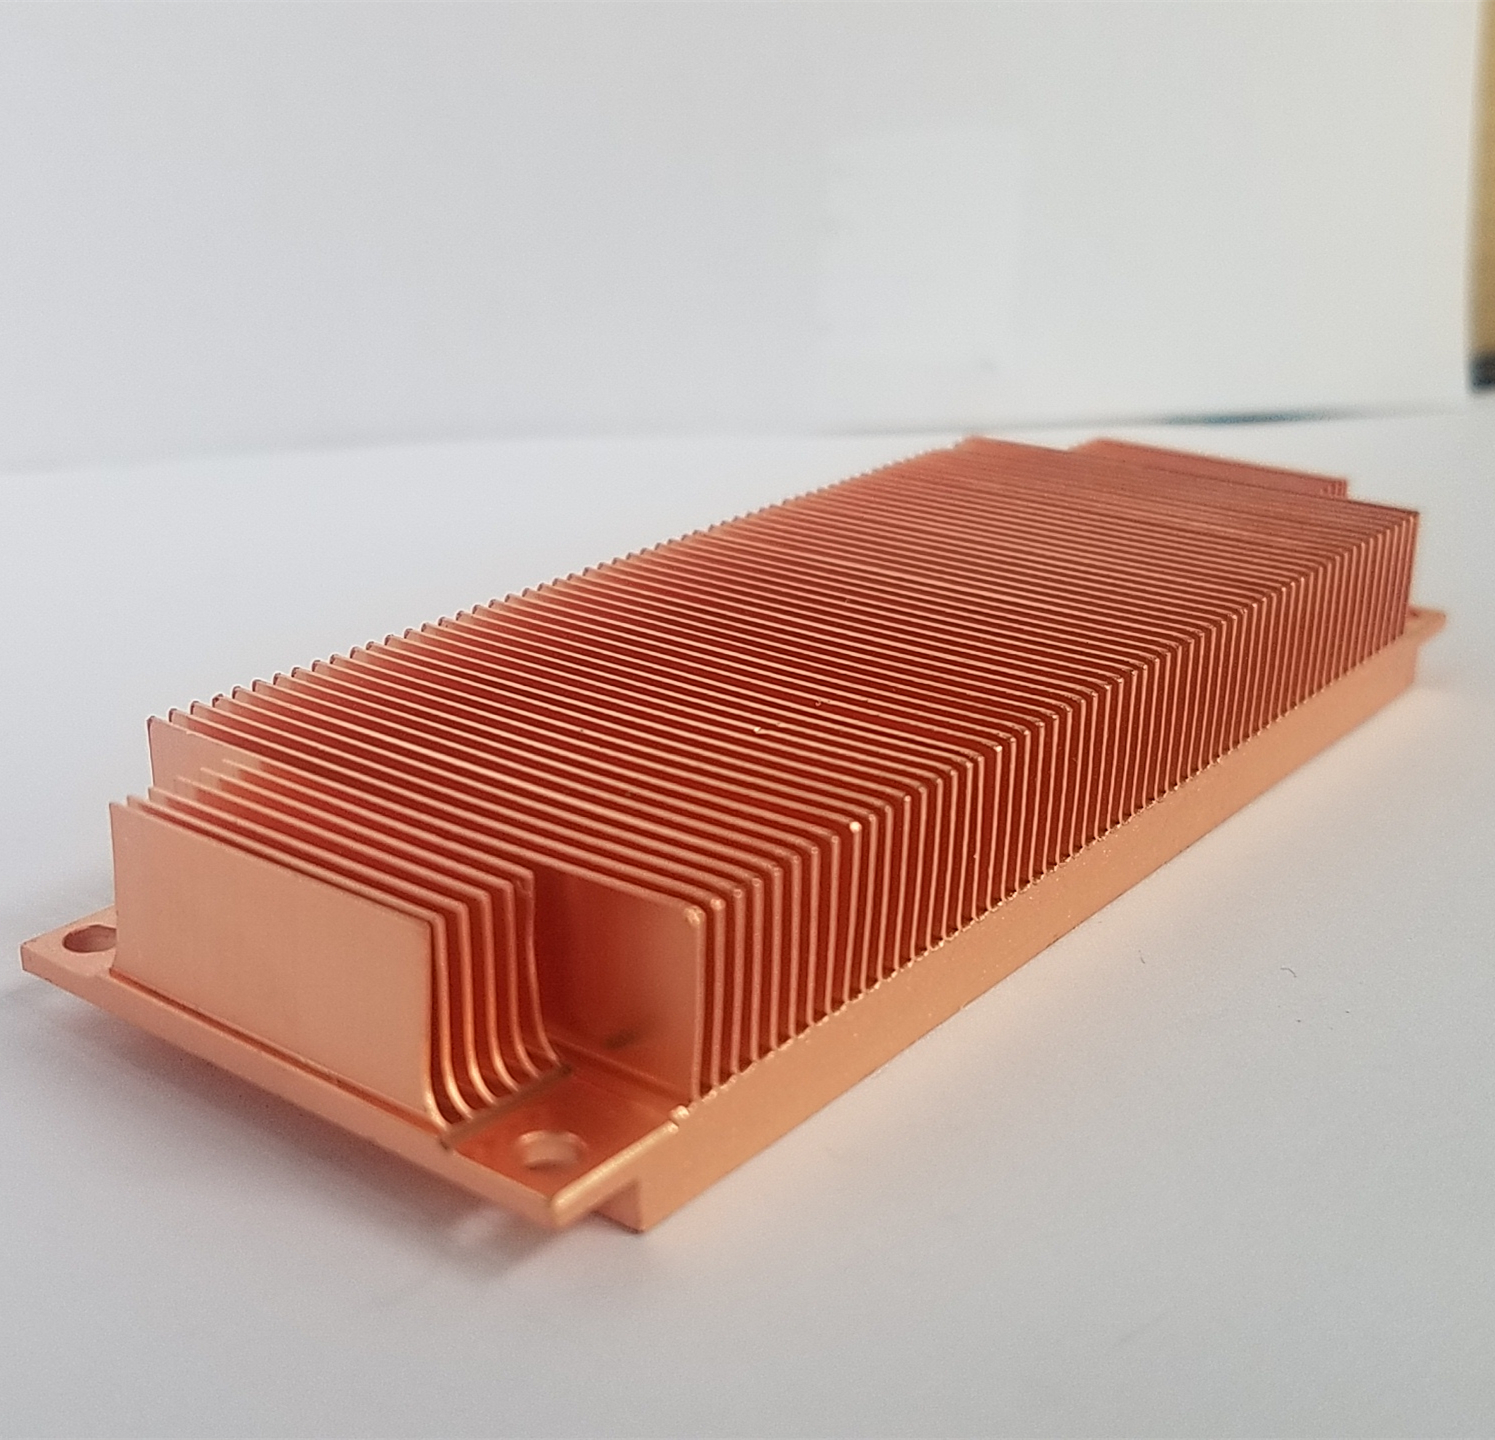 China supplier rectangle copper skived fin heatsink for cpu cooler